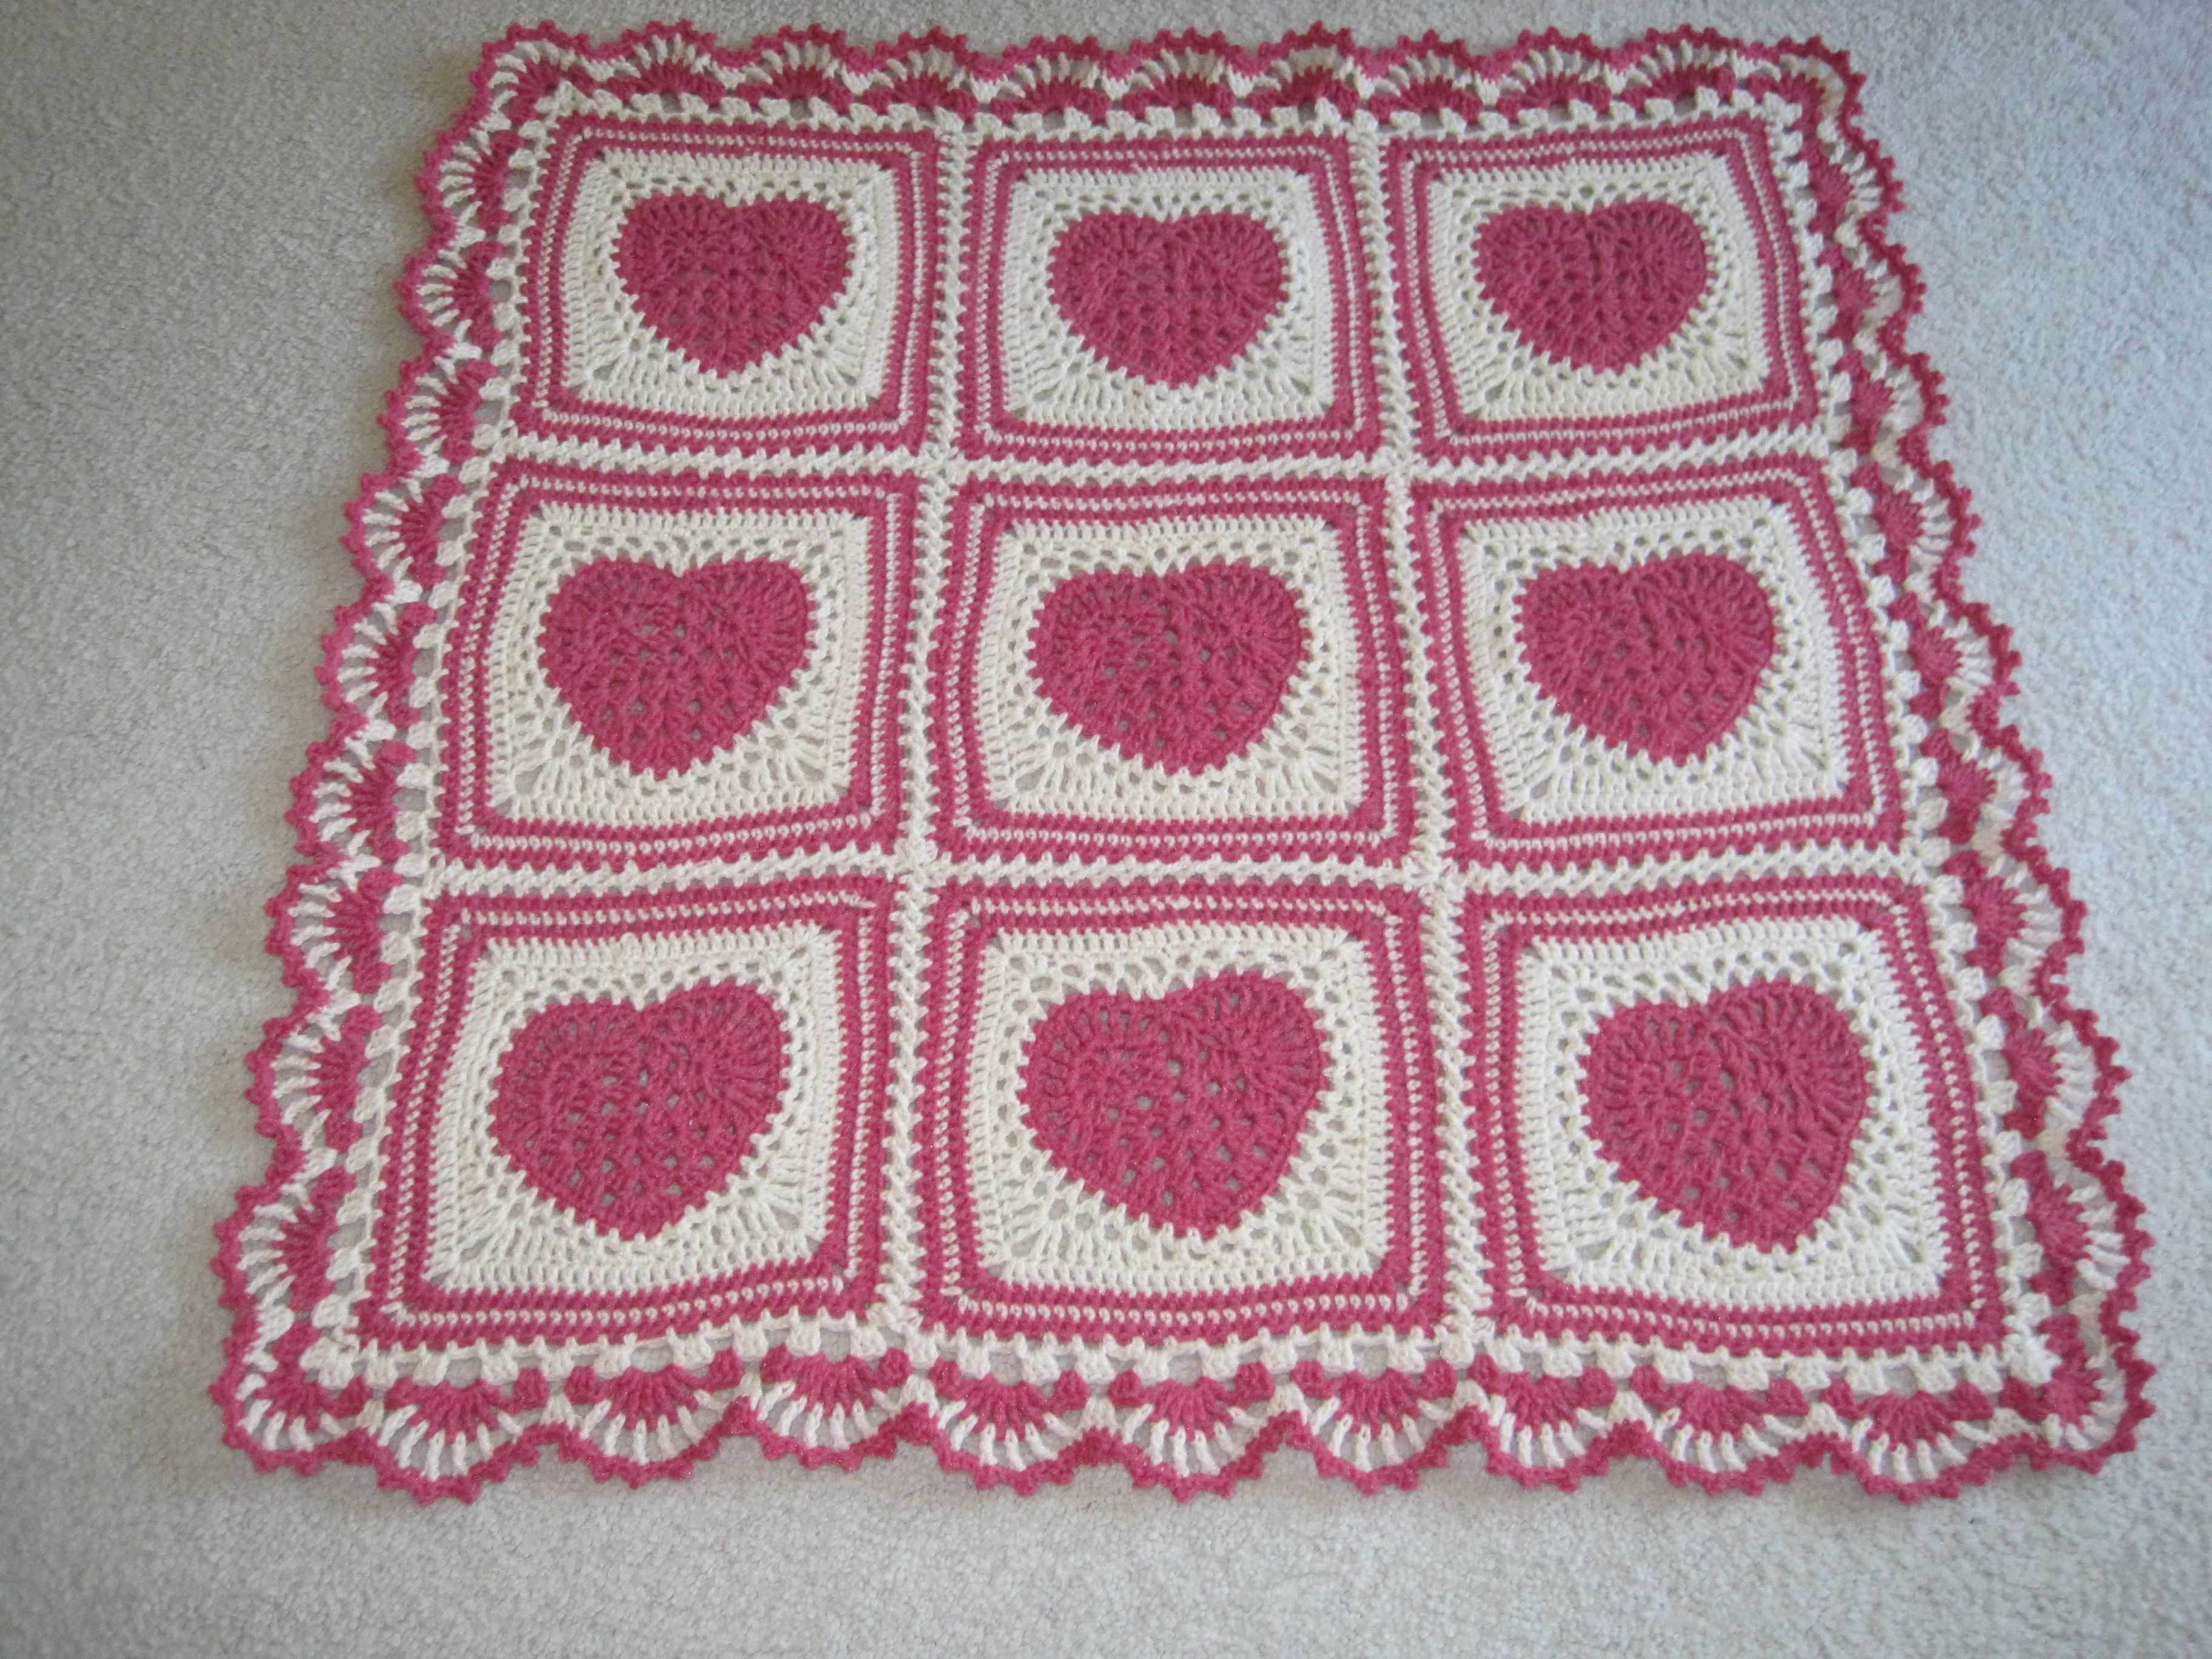 Crocheted heart blanket crochet baby blankets crochet baby and crocheted baby blanket pink and white lacy hearts with border for valentines bankloansurffo Images